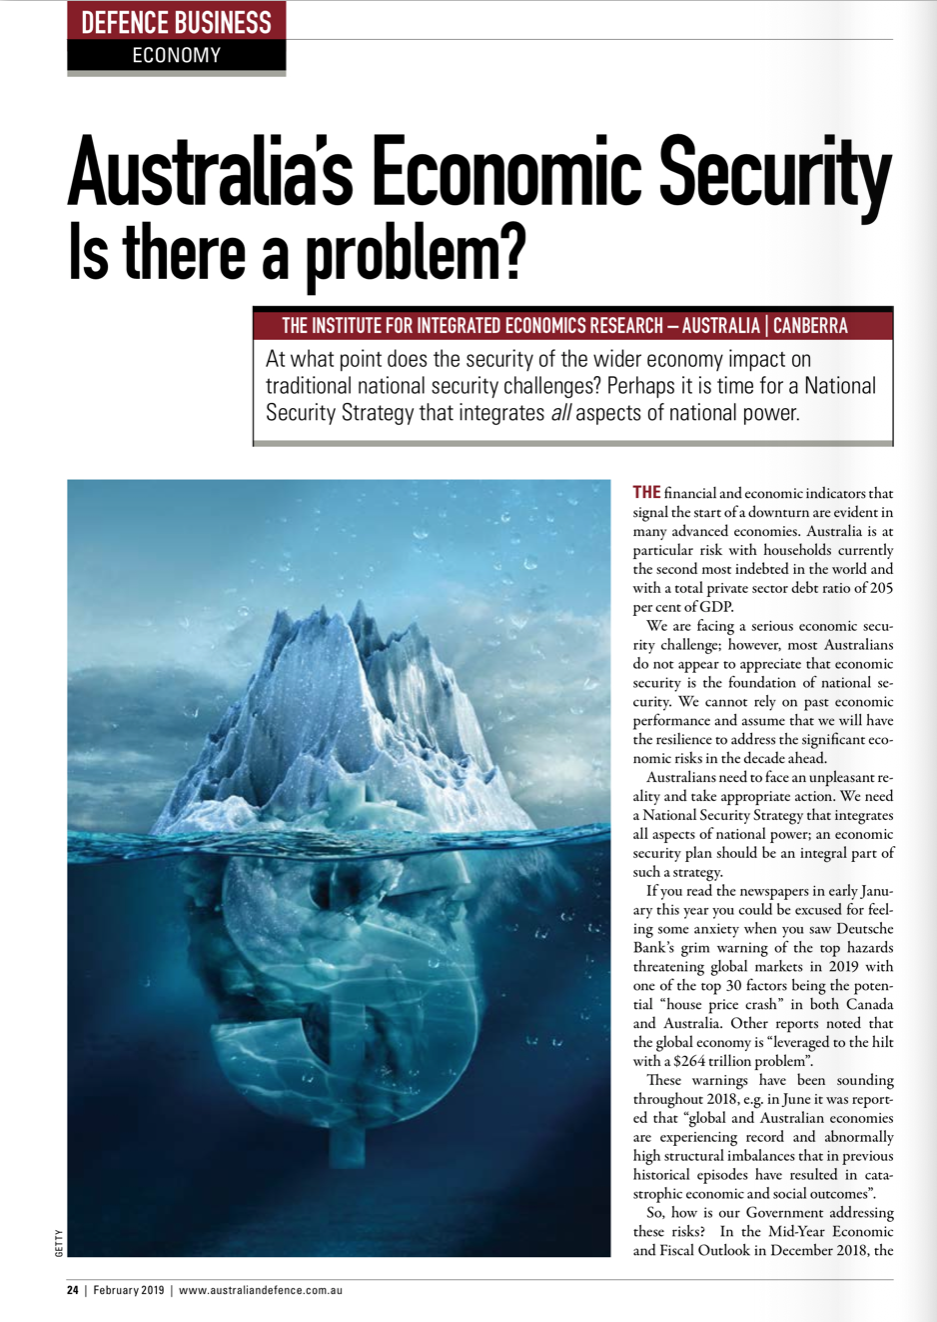 Australia's Economic Security: Is there a problem? - What is the risk for our National Security and Defence Capability?Published in the Australian Defence Magazine, February 2019.Financial and economic indicators that signal the start of a downturn are evident in advanced economies. Australia is at particular risk with households currently the second most indebted in the world and with a total private sector debt ratio of 205% of GDP. We are facing a serious economic security challenge; however, most Australians (including many of our politicians) do not appear to appreciate that economic security is the foundation of our national security.We cannot rely on past economic performance and assume that we will have the resilience to address the significant economic risks in the decade ahead. Australians need to face an unpleasant reality and take appropriate action. We need a National Security Strategy that integrates all aspects of national power. An economic security plan should be an integral part of such a strategy.